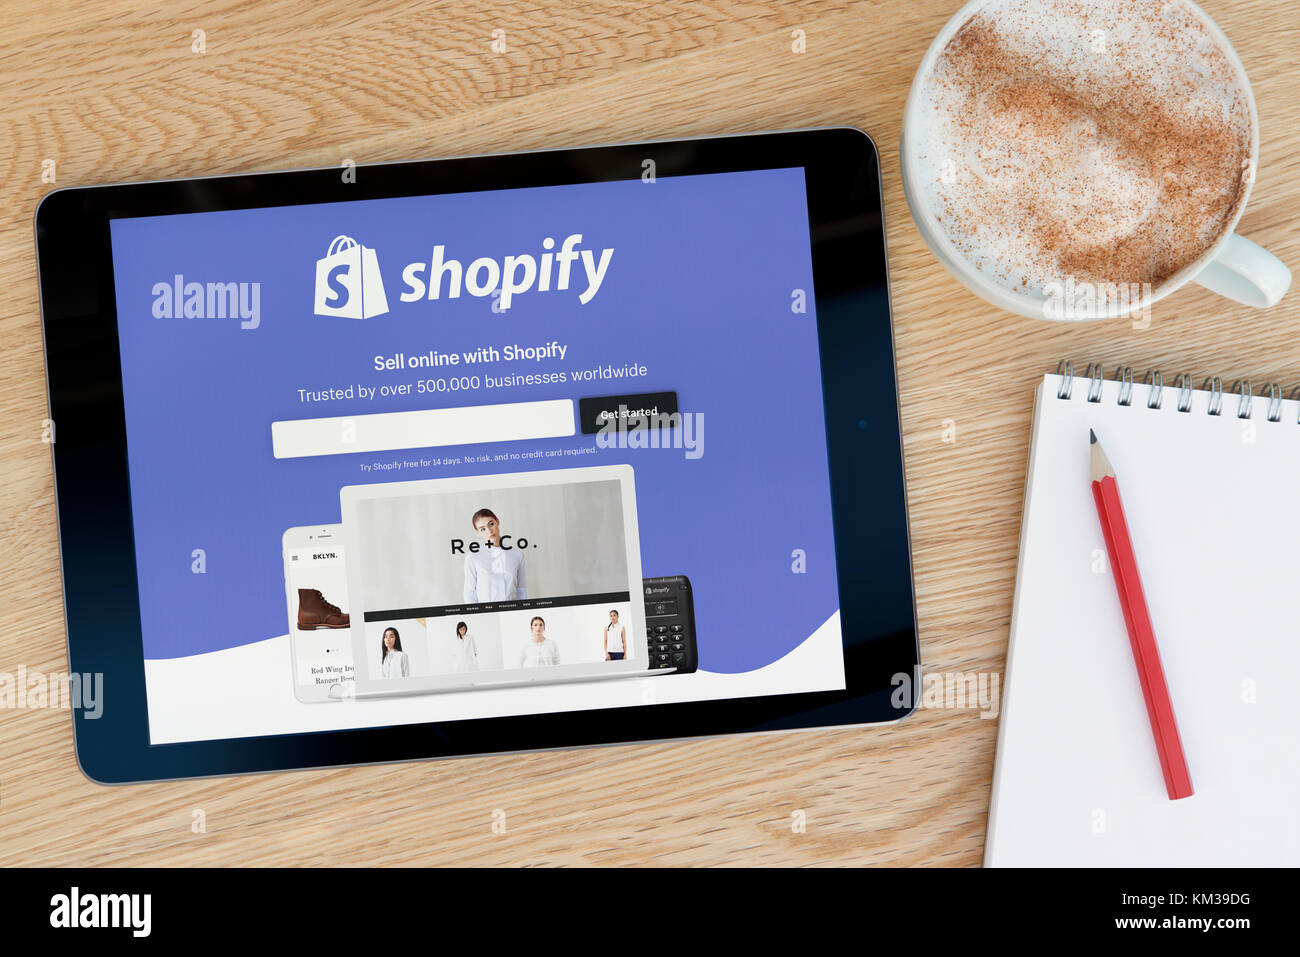 The Shopify website features on an iPad tablet device which rests on a wooden table beside a notepad and pencil - Stock Image